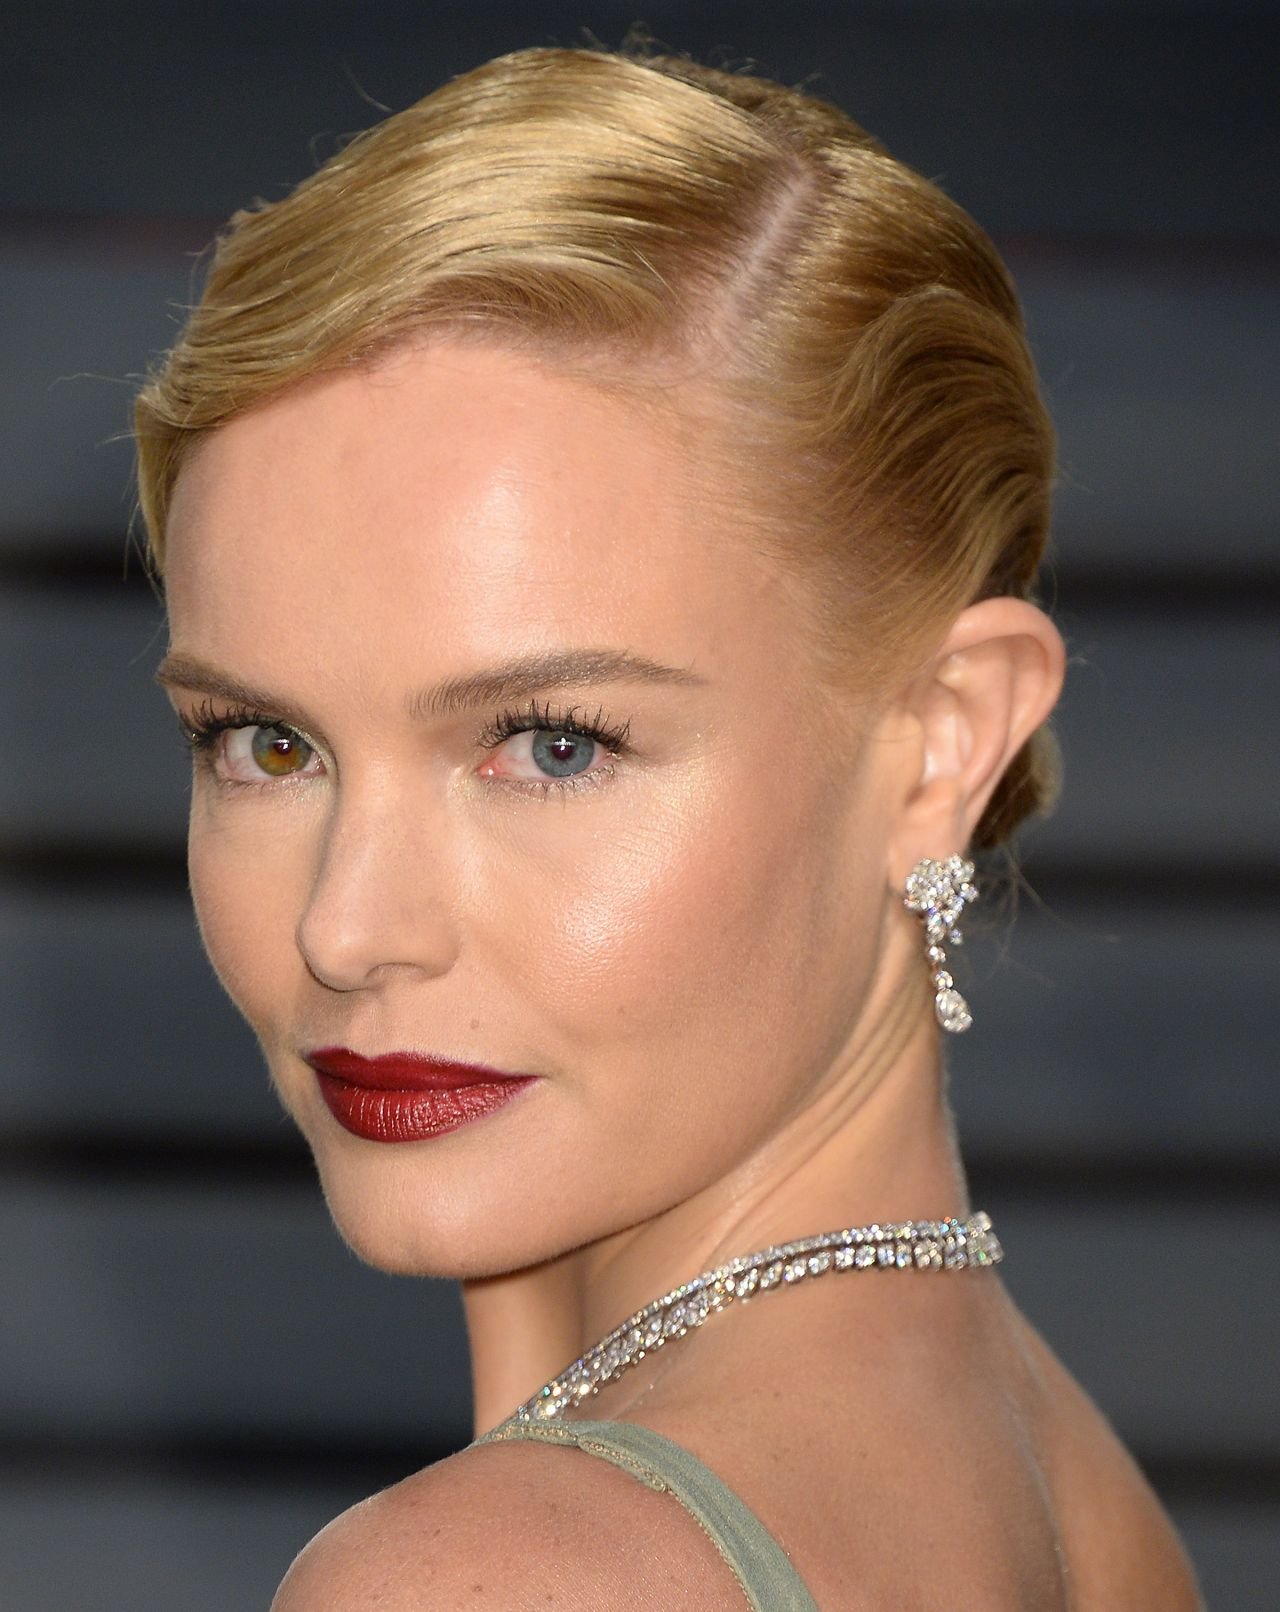 Kate Bosworth at Vanity Fair Oscar 2017 Party in Los Angeles Kate Bosworth